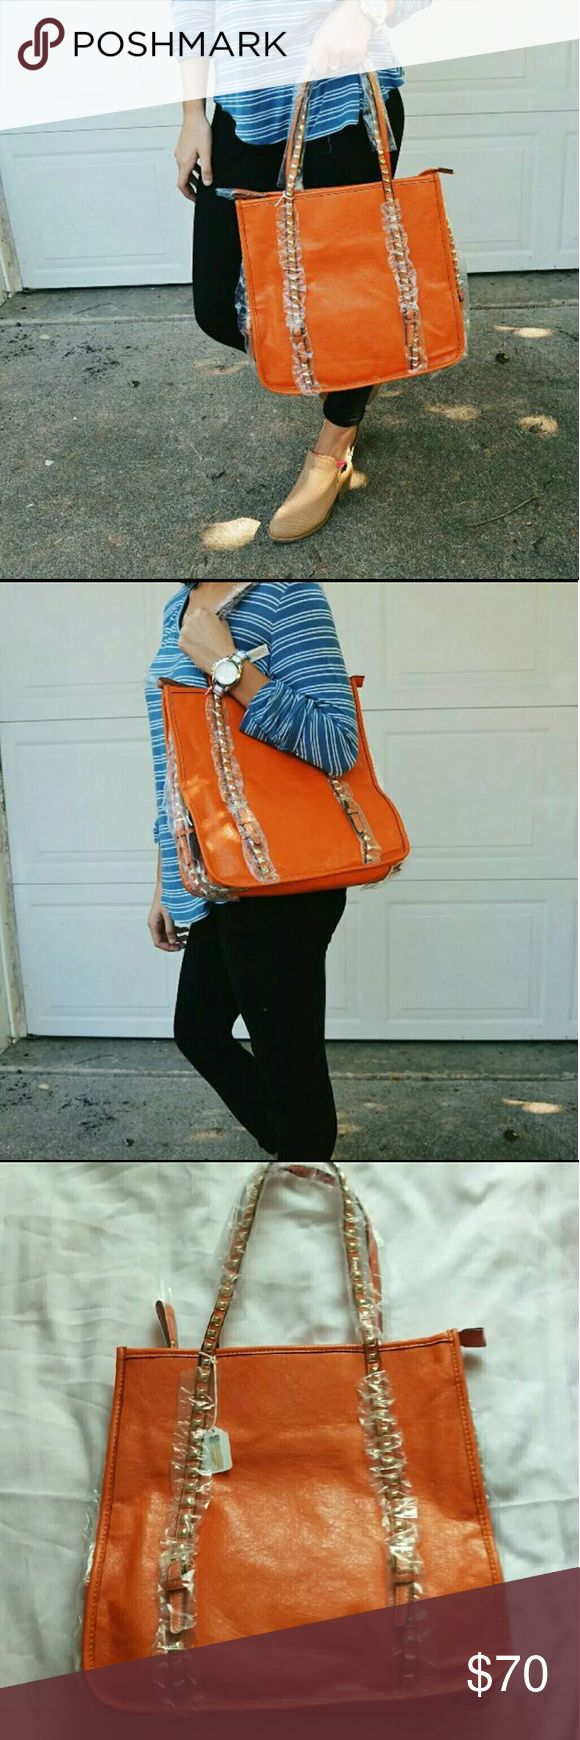 [boutique] NWT orange stud tote bag Orange tote bag with studs on straps. The perfect color to bring in fall!  Boutique! NWT! Bags Totes